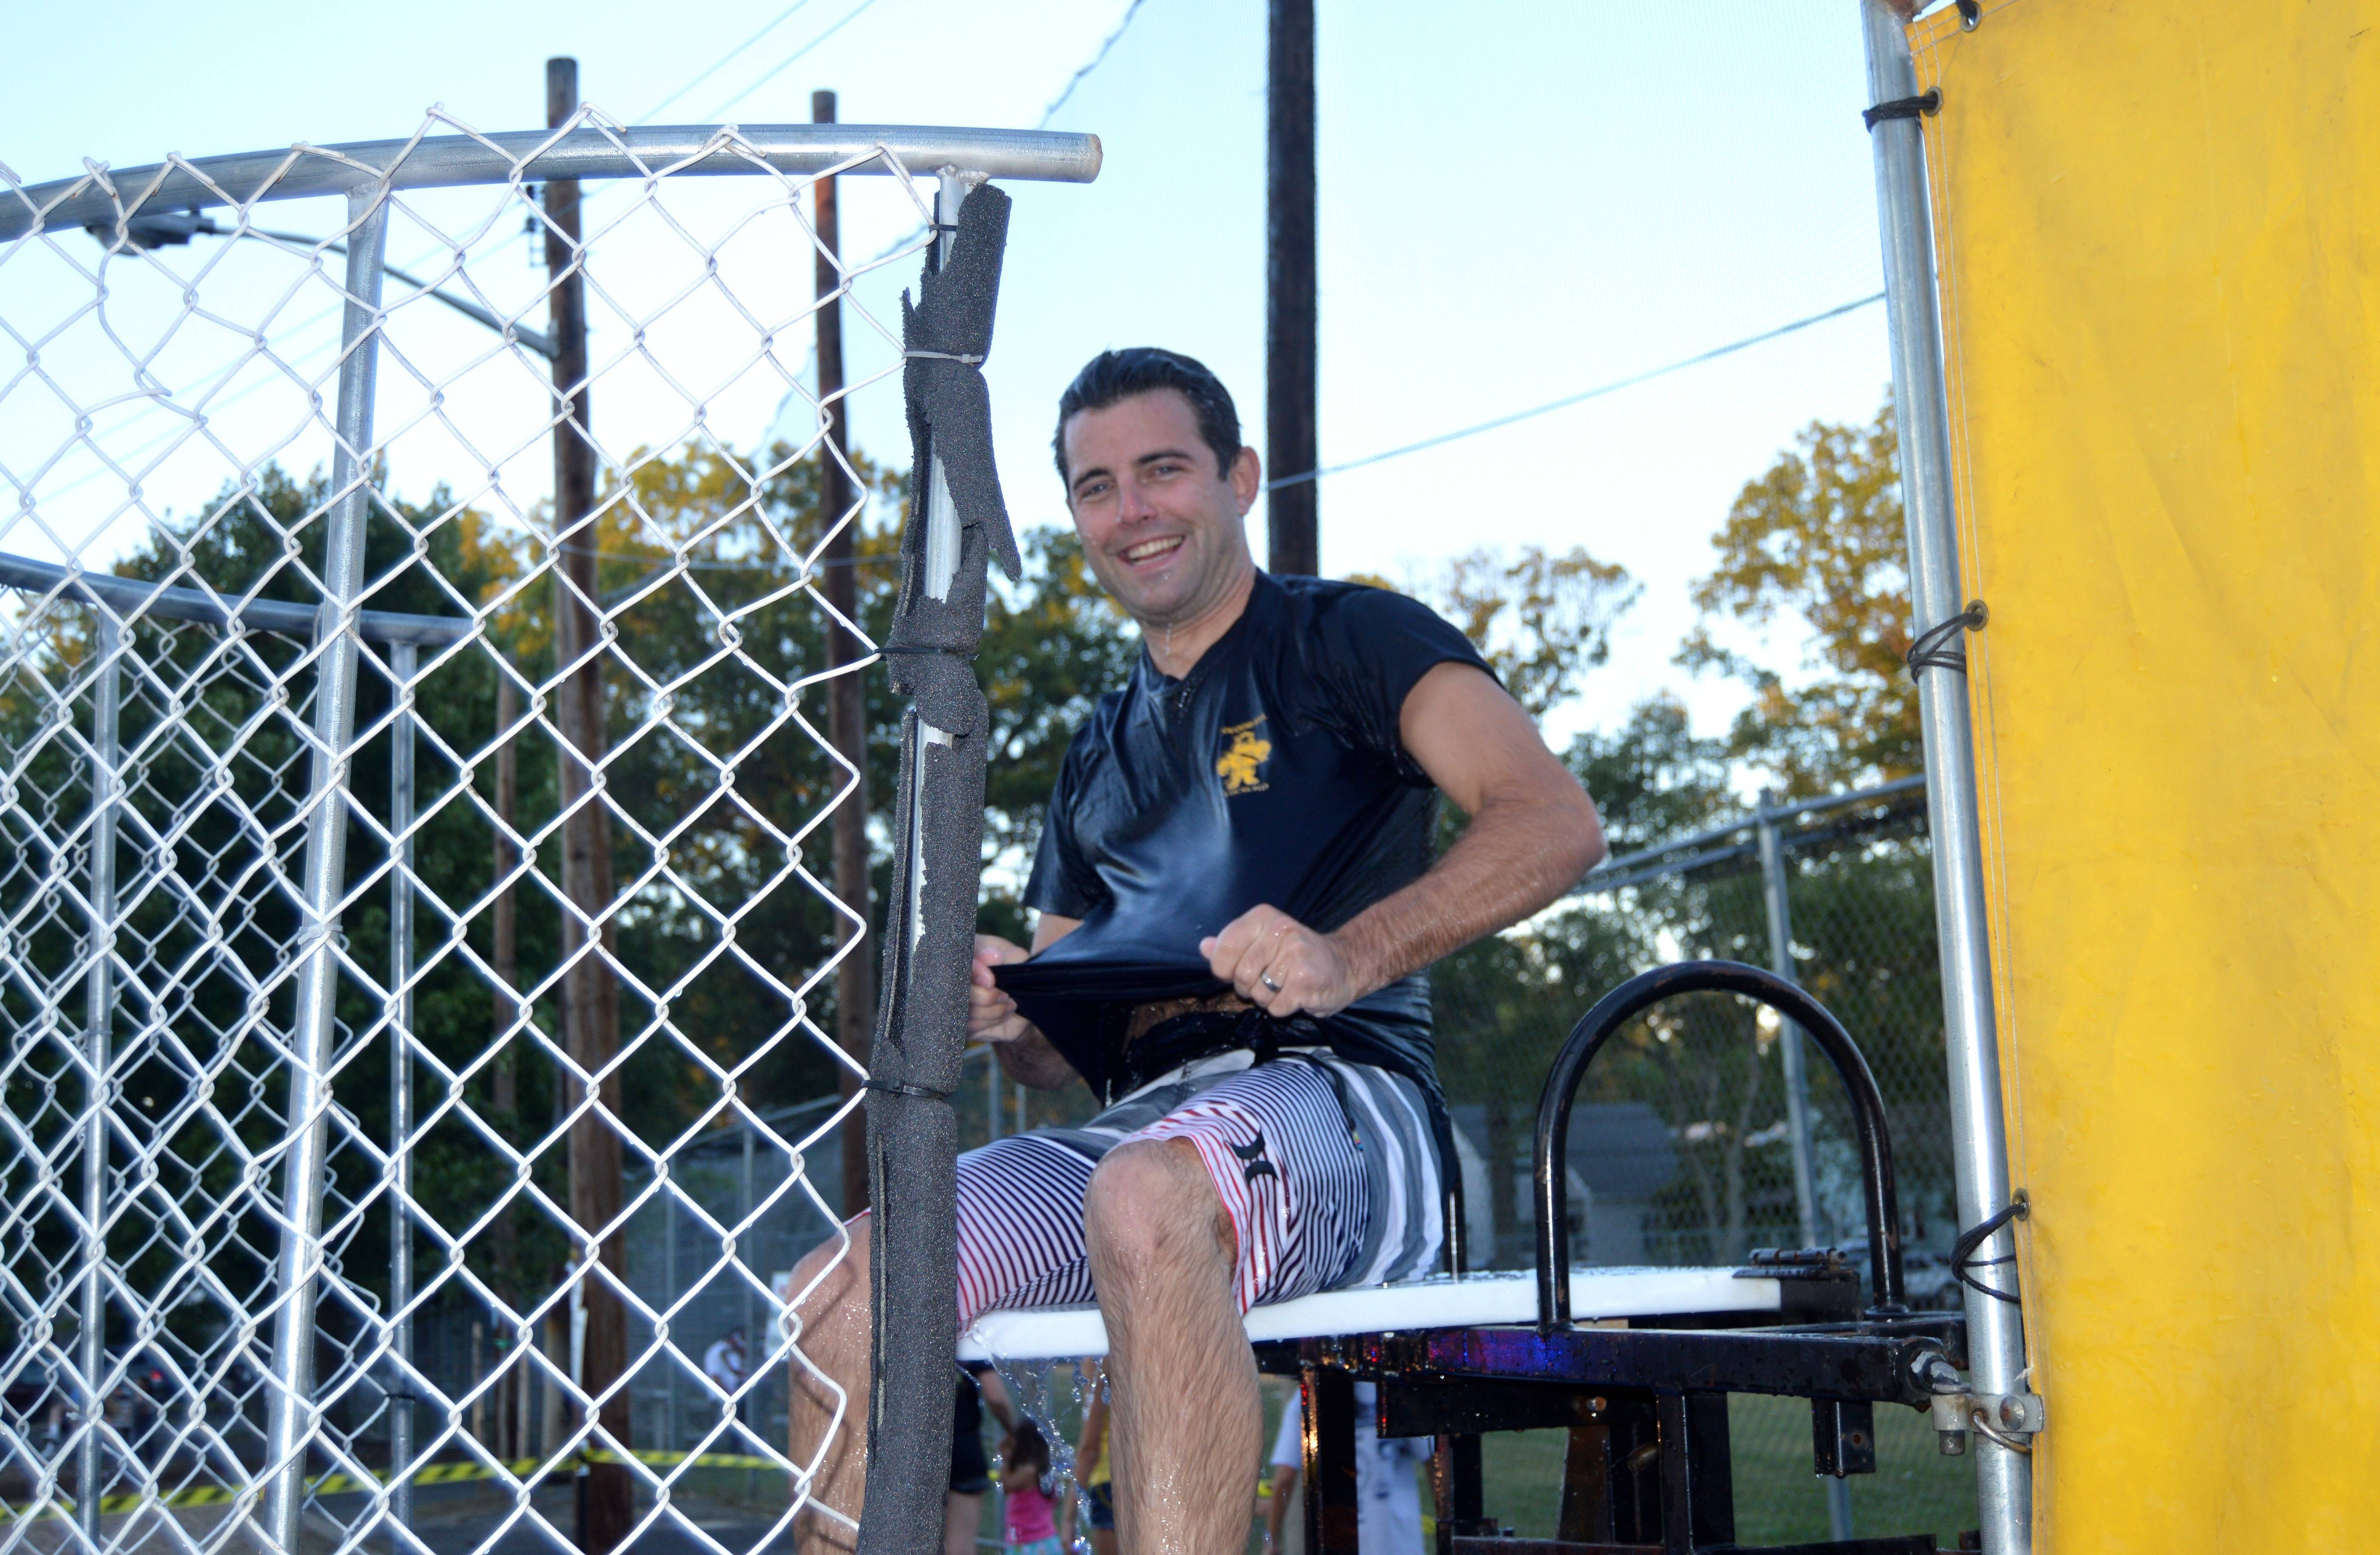 532ac82491de24dc0088_Fanwood_Officer_in_Dunk_Tank_-_horizontal.JPG